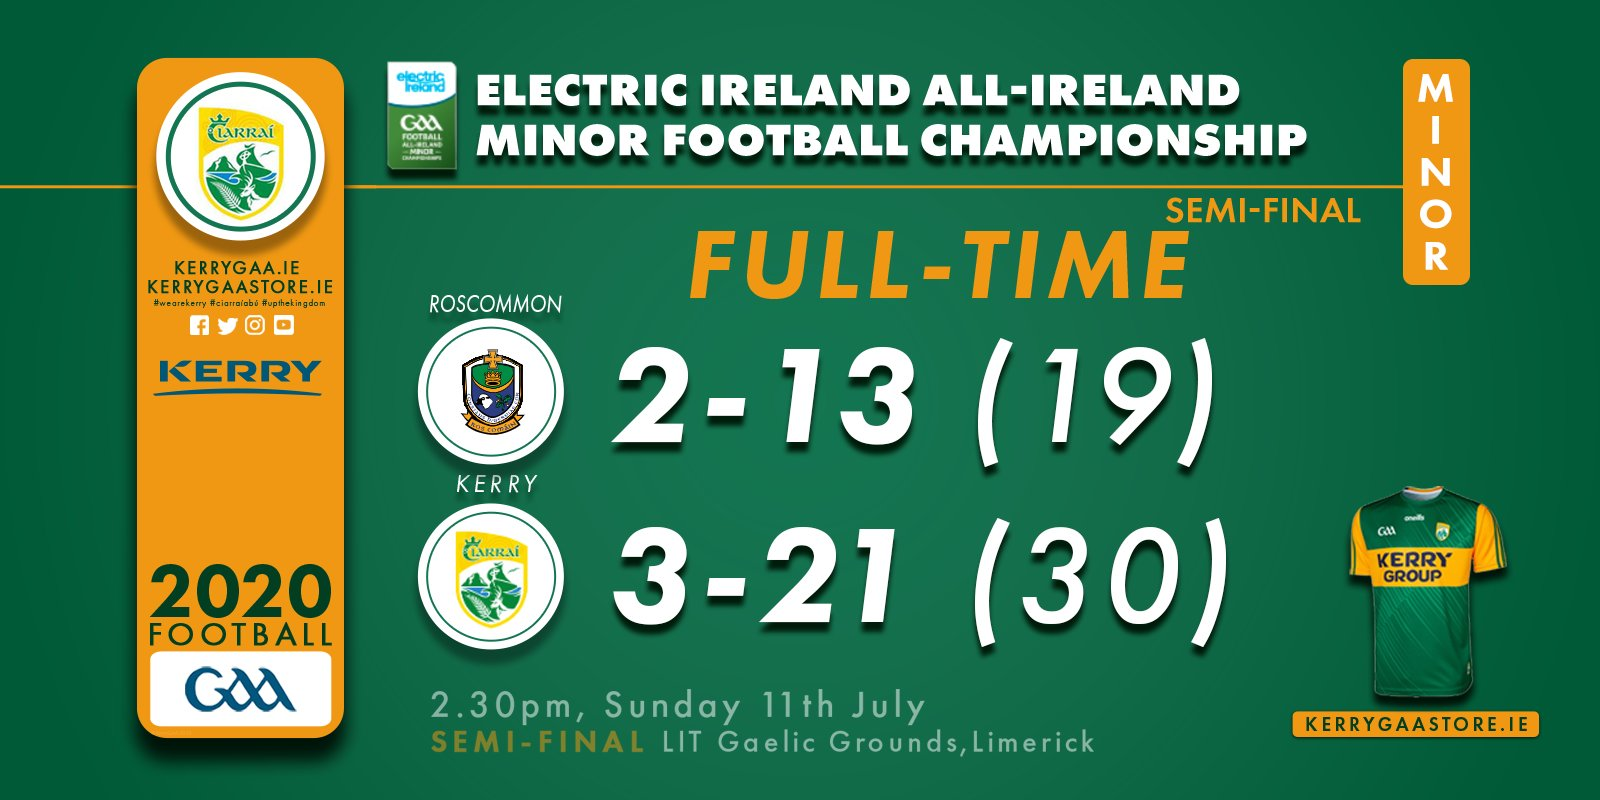 All Ireland Final awaits for 2020 Minors with impressive win over Roscommon